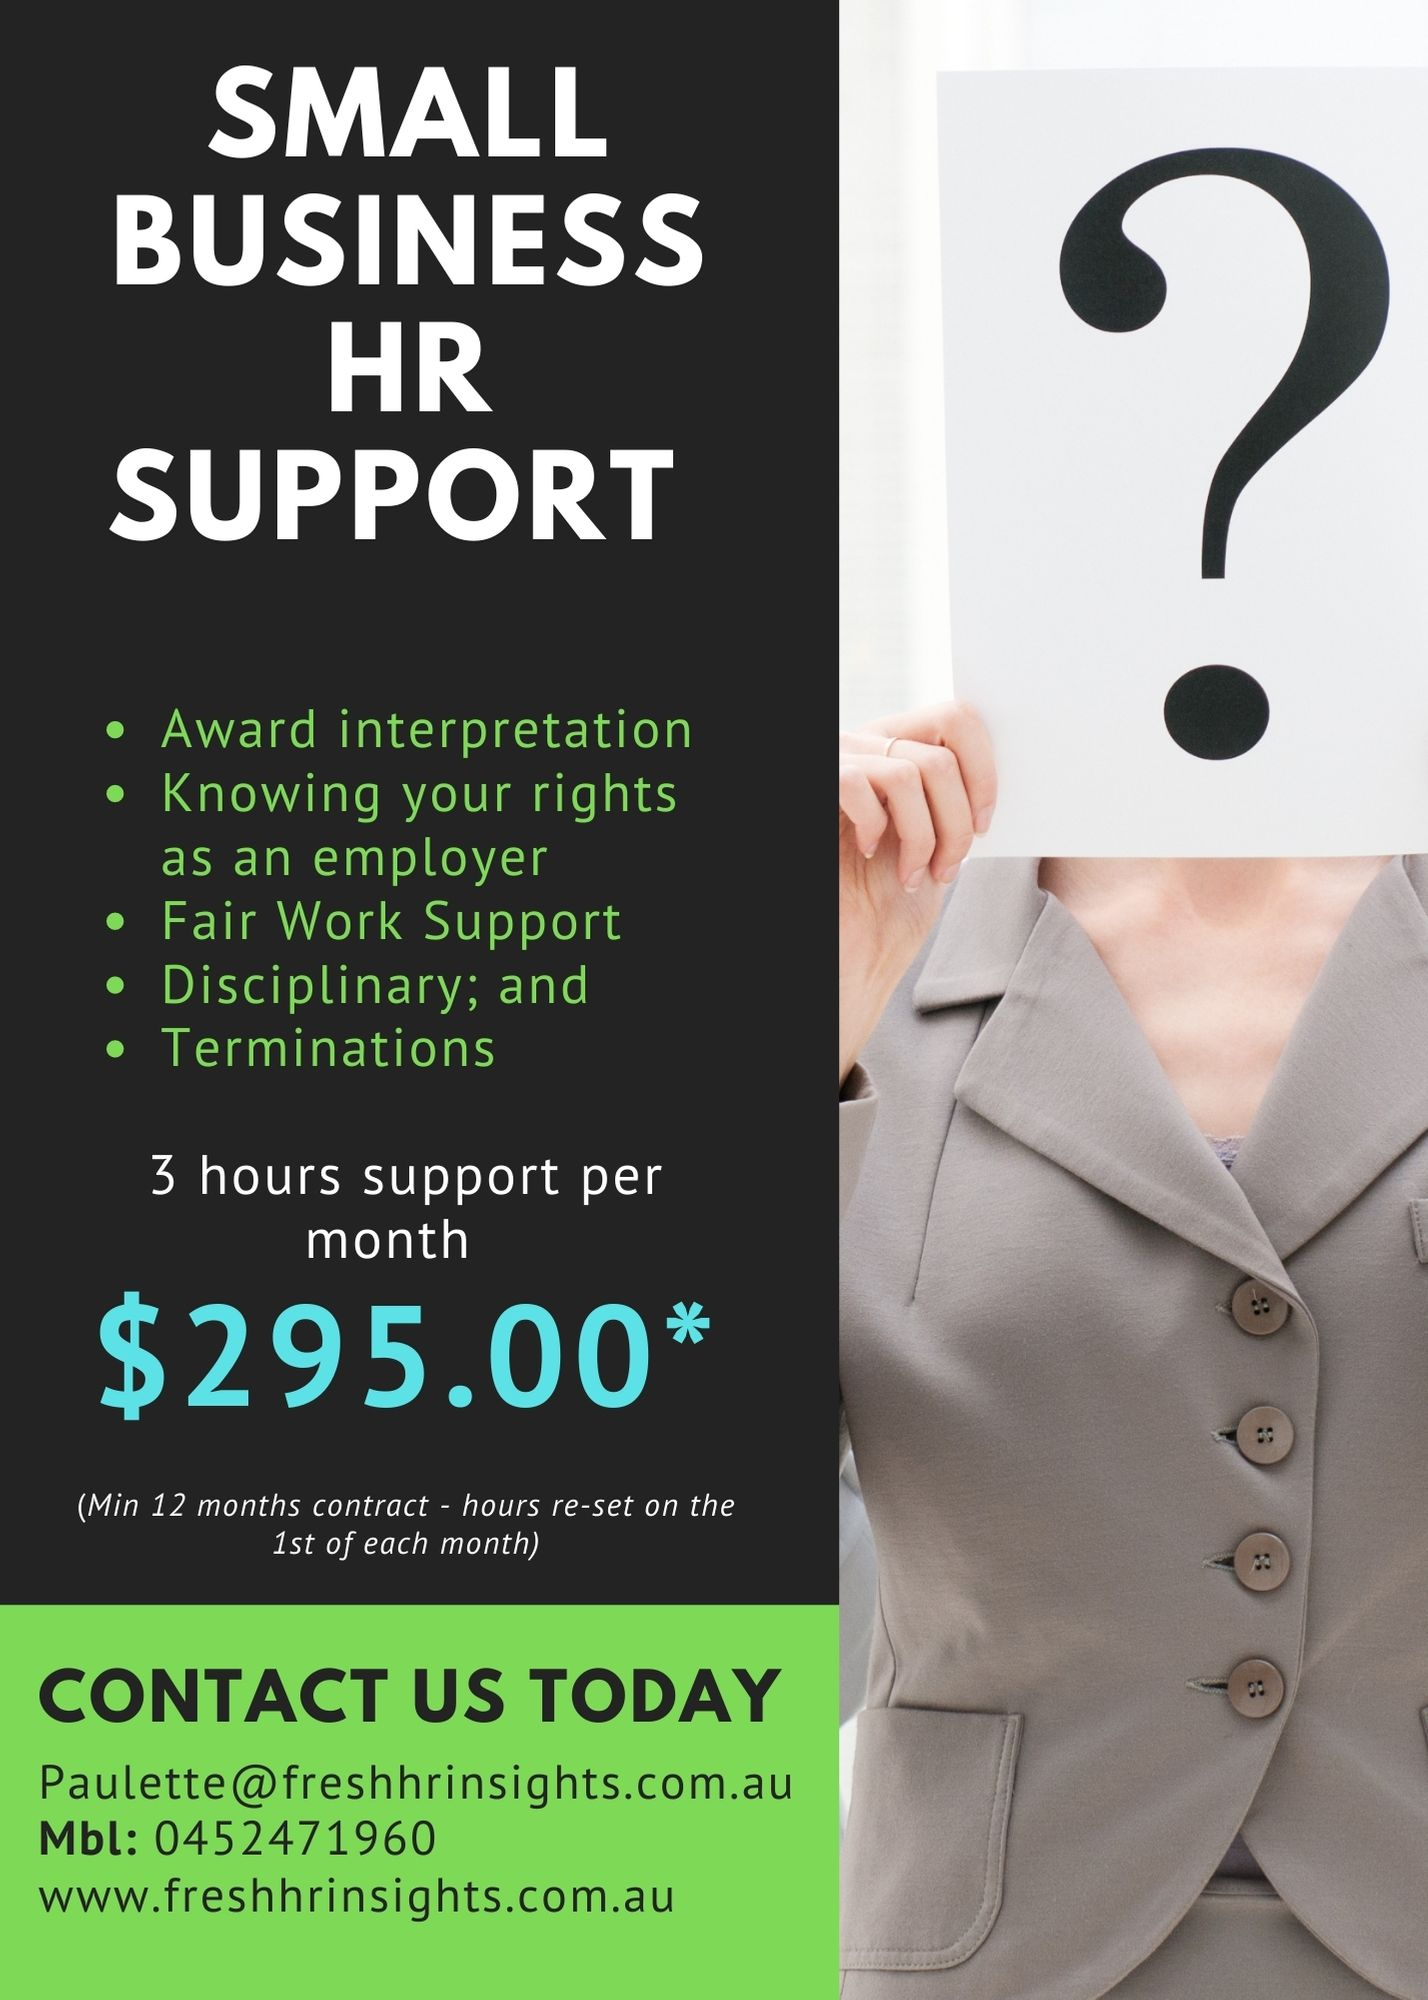 Small Business HR Support  - HR Support for Small Business